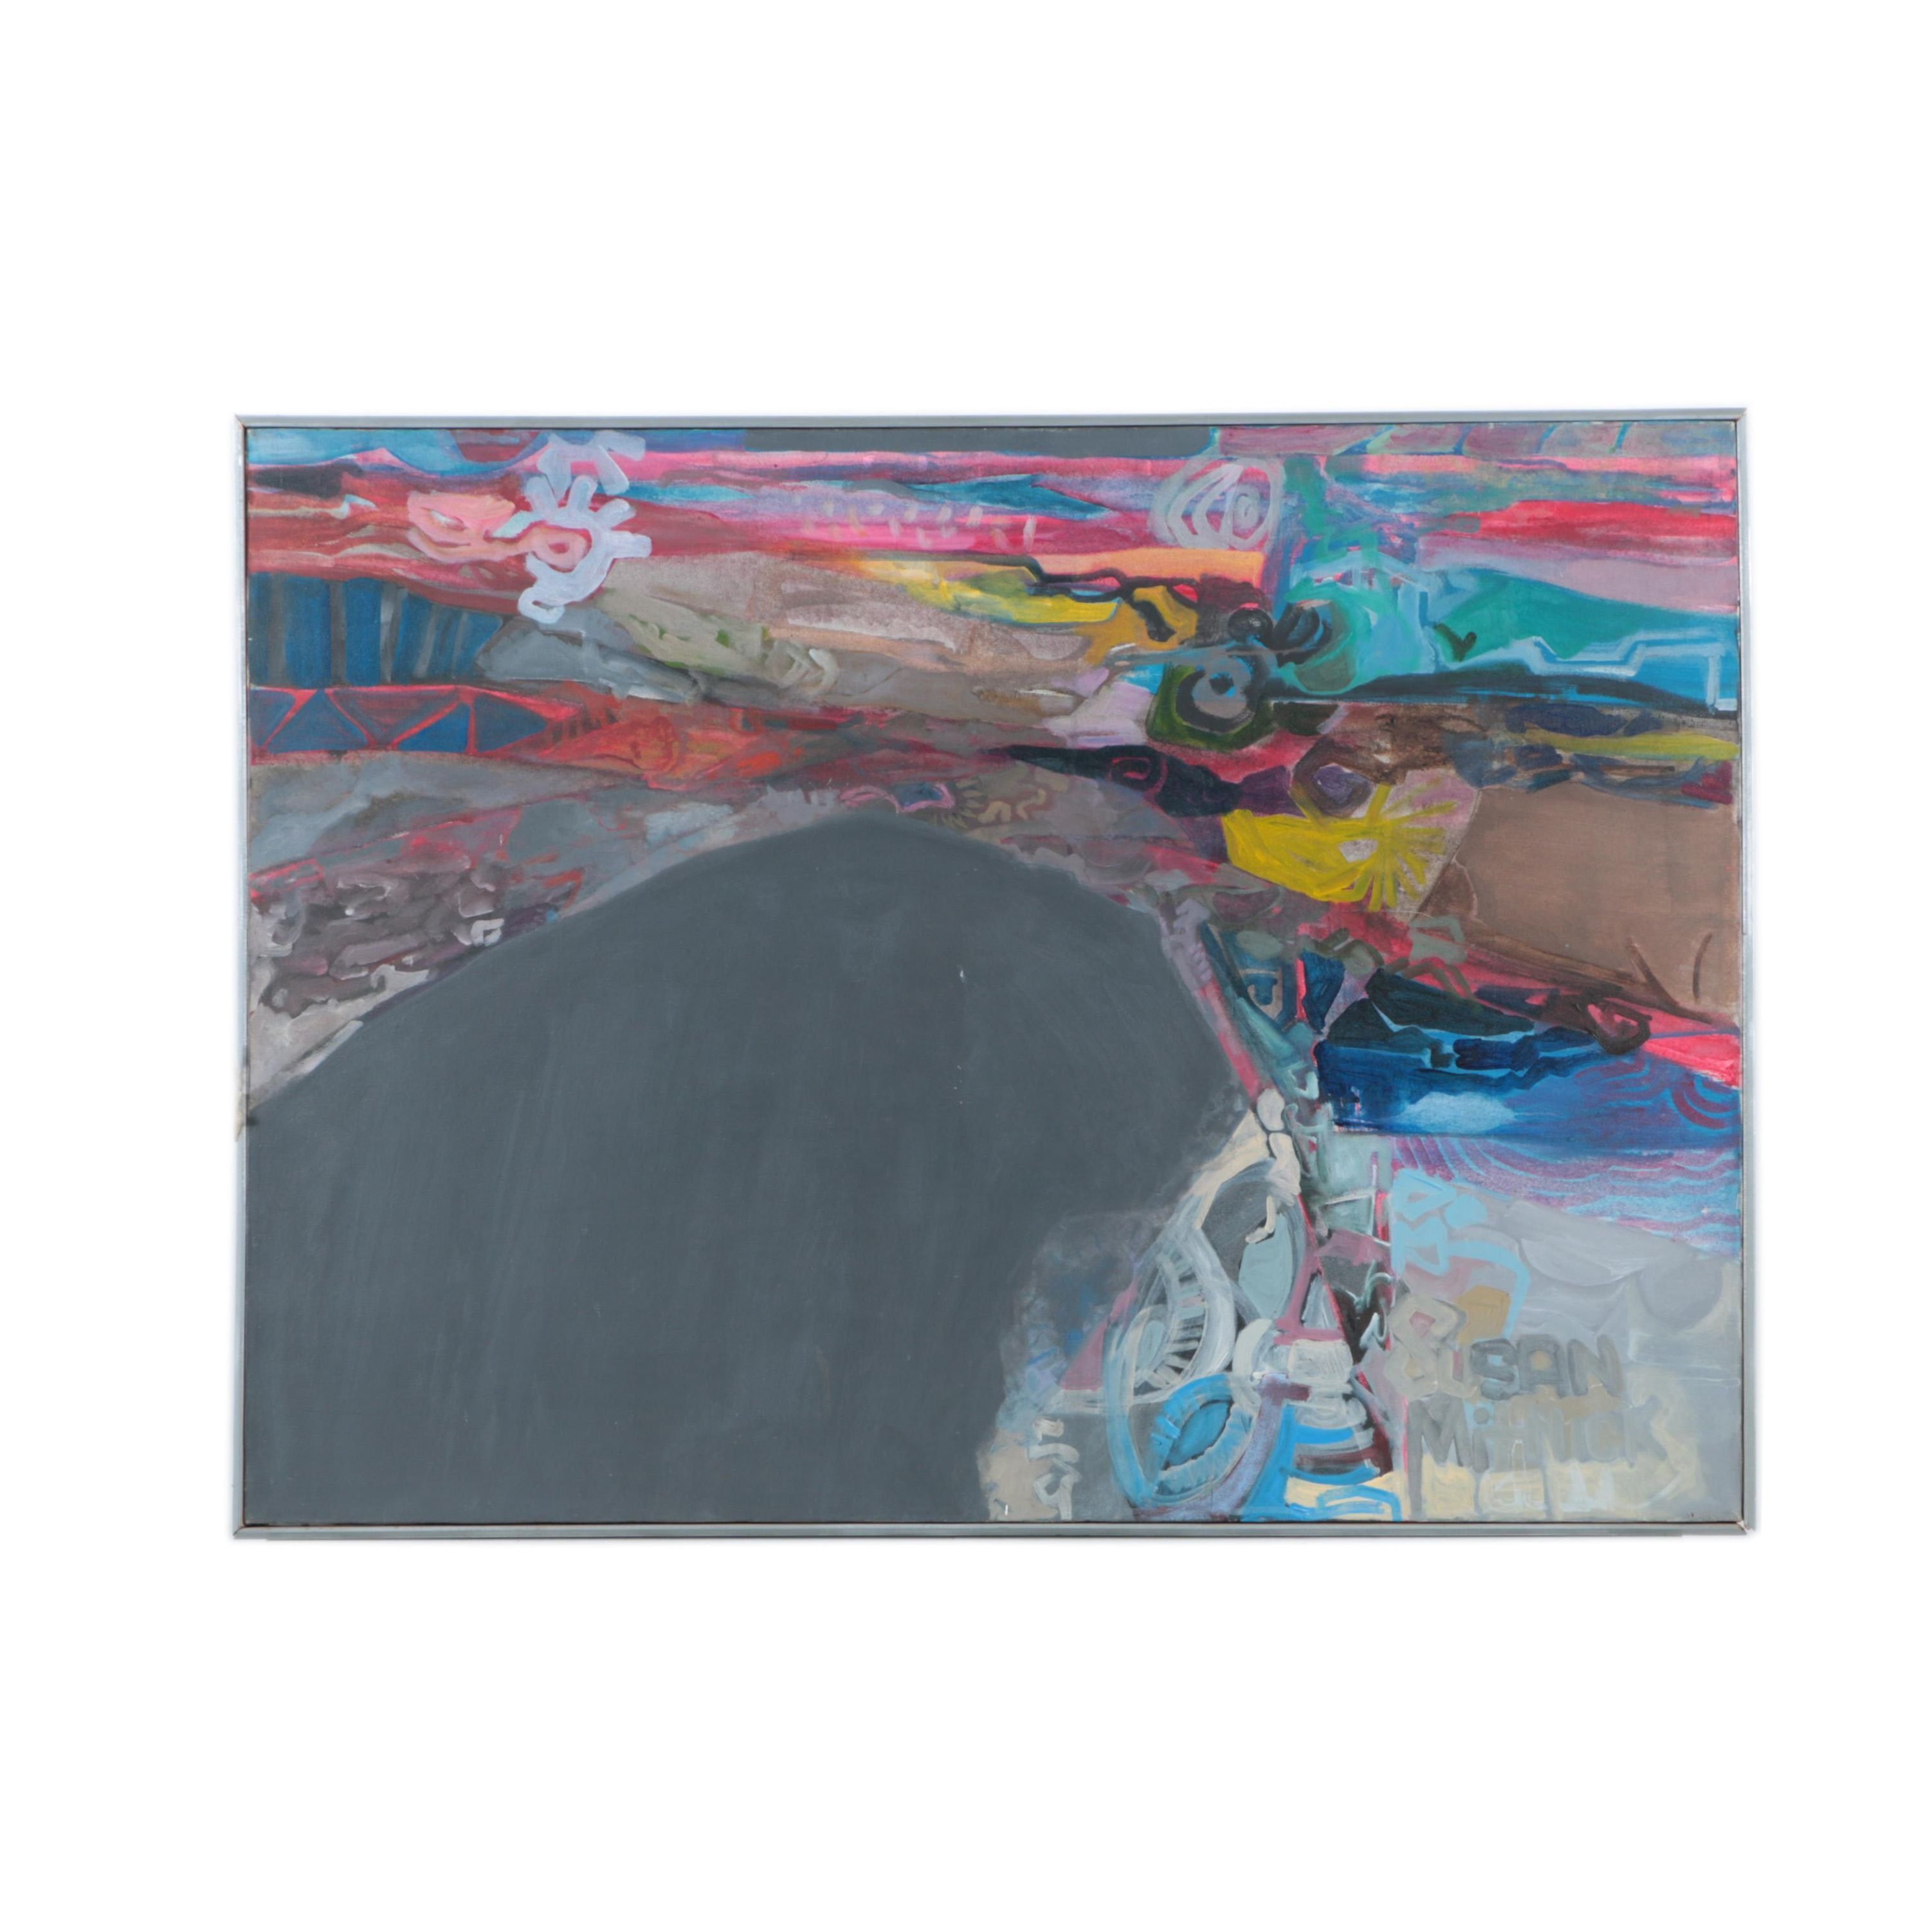 Susan Mitnick Abstract Acrylic Painting on Canvas